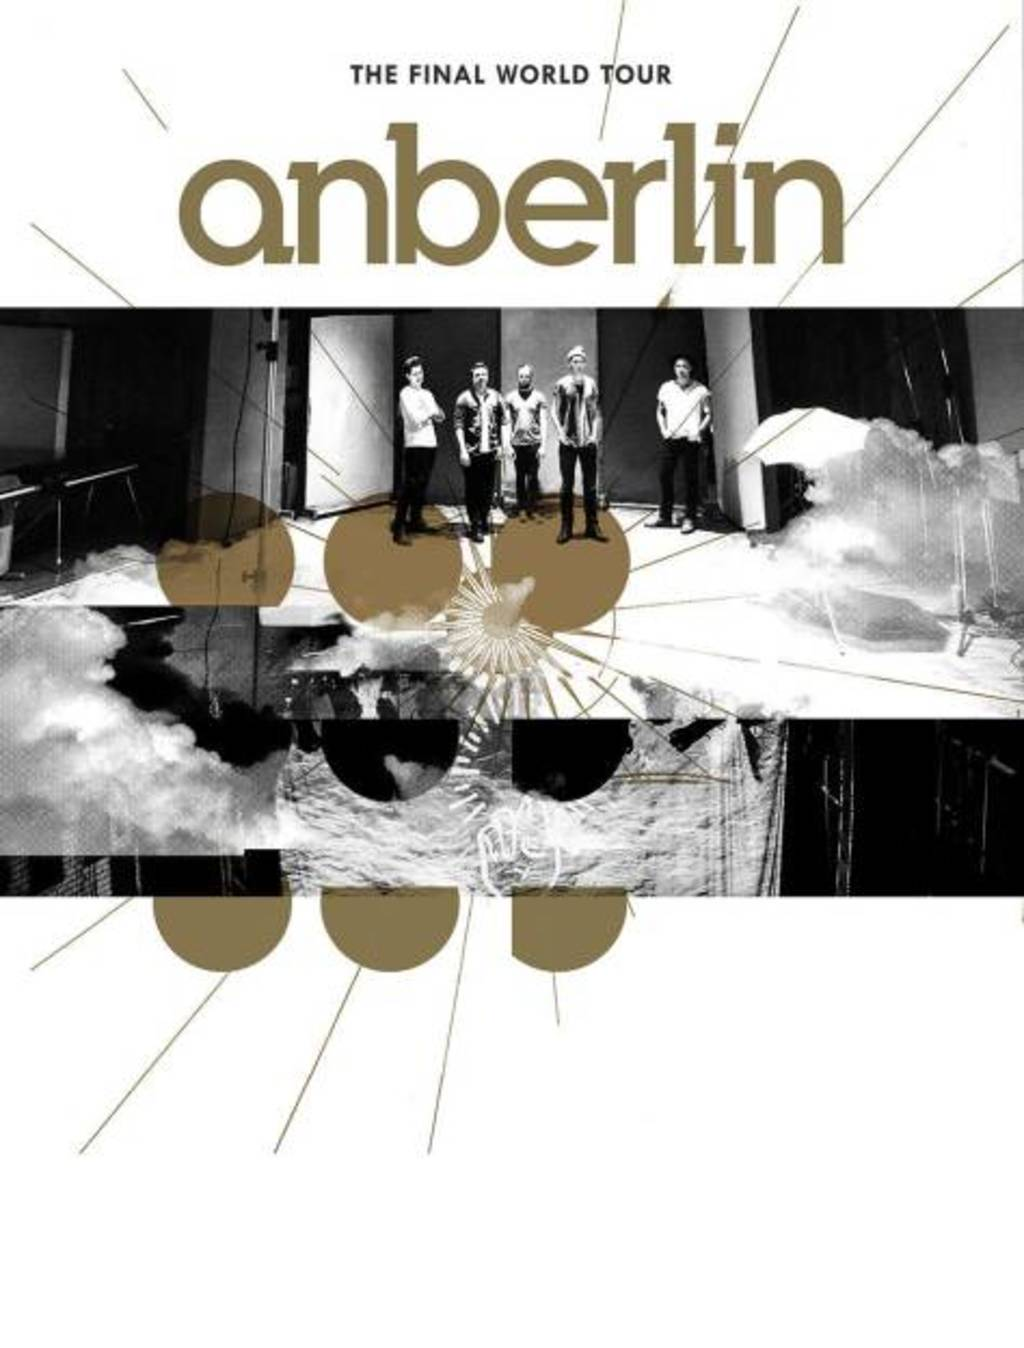 anberlin-final-world-tour